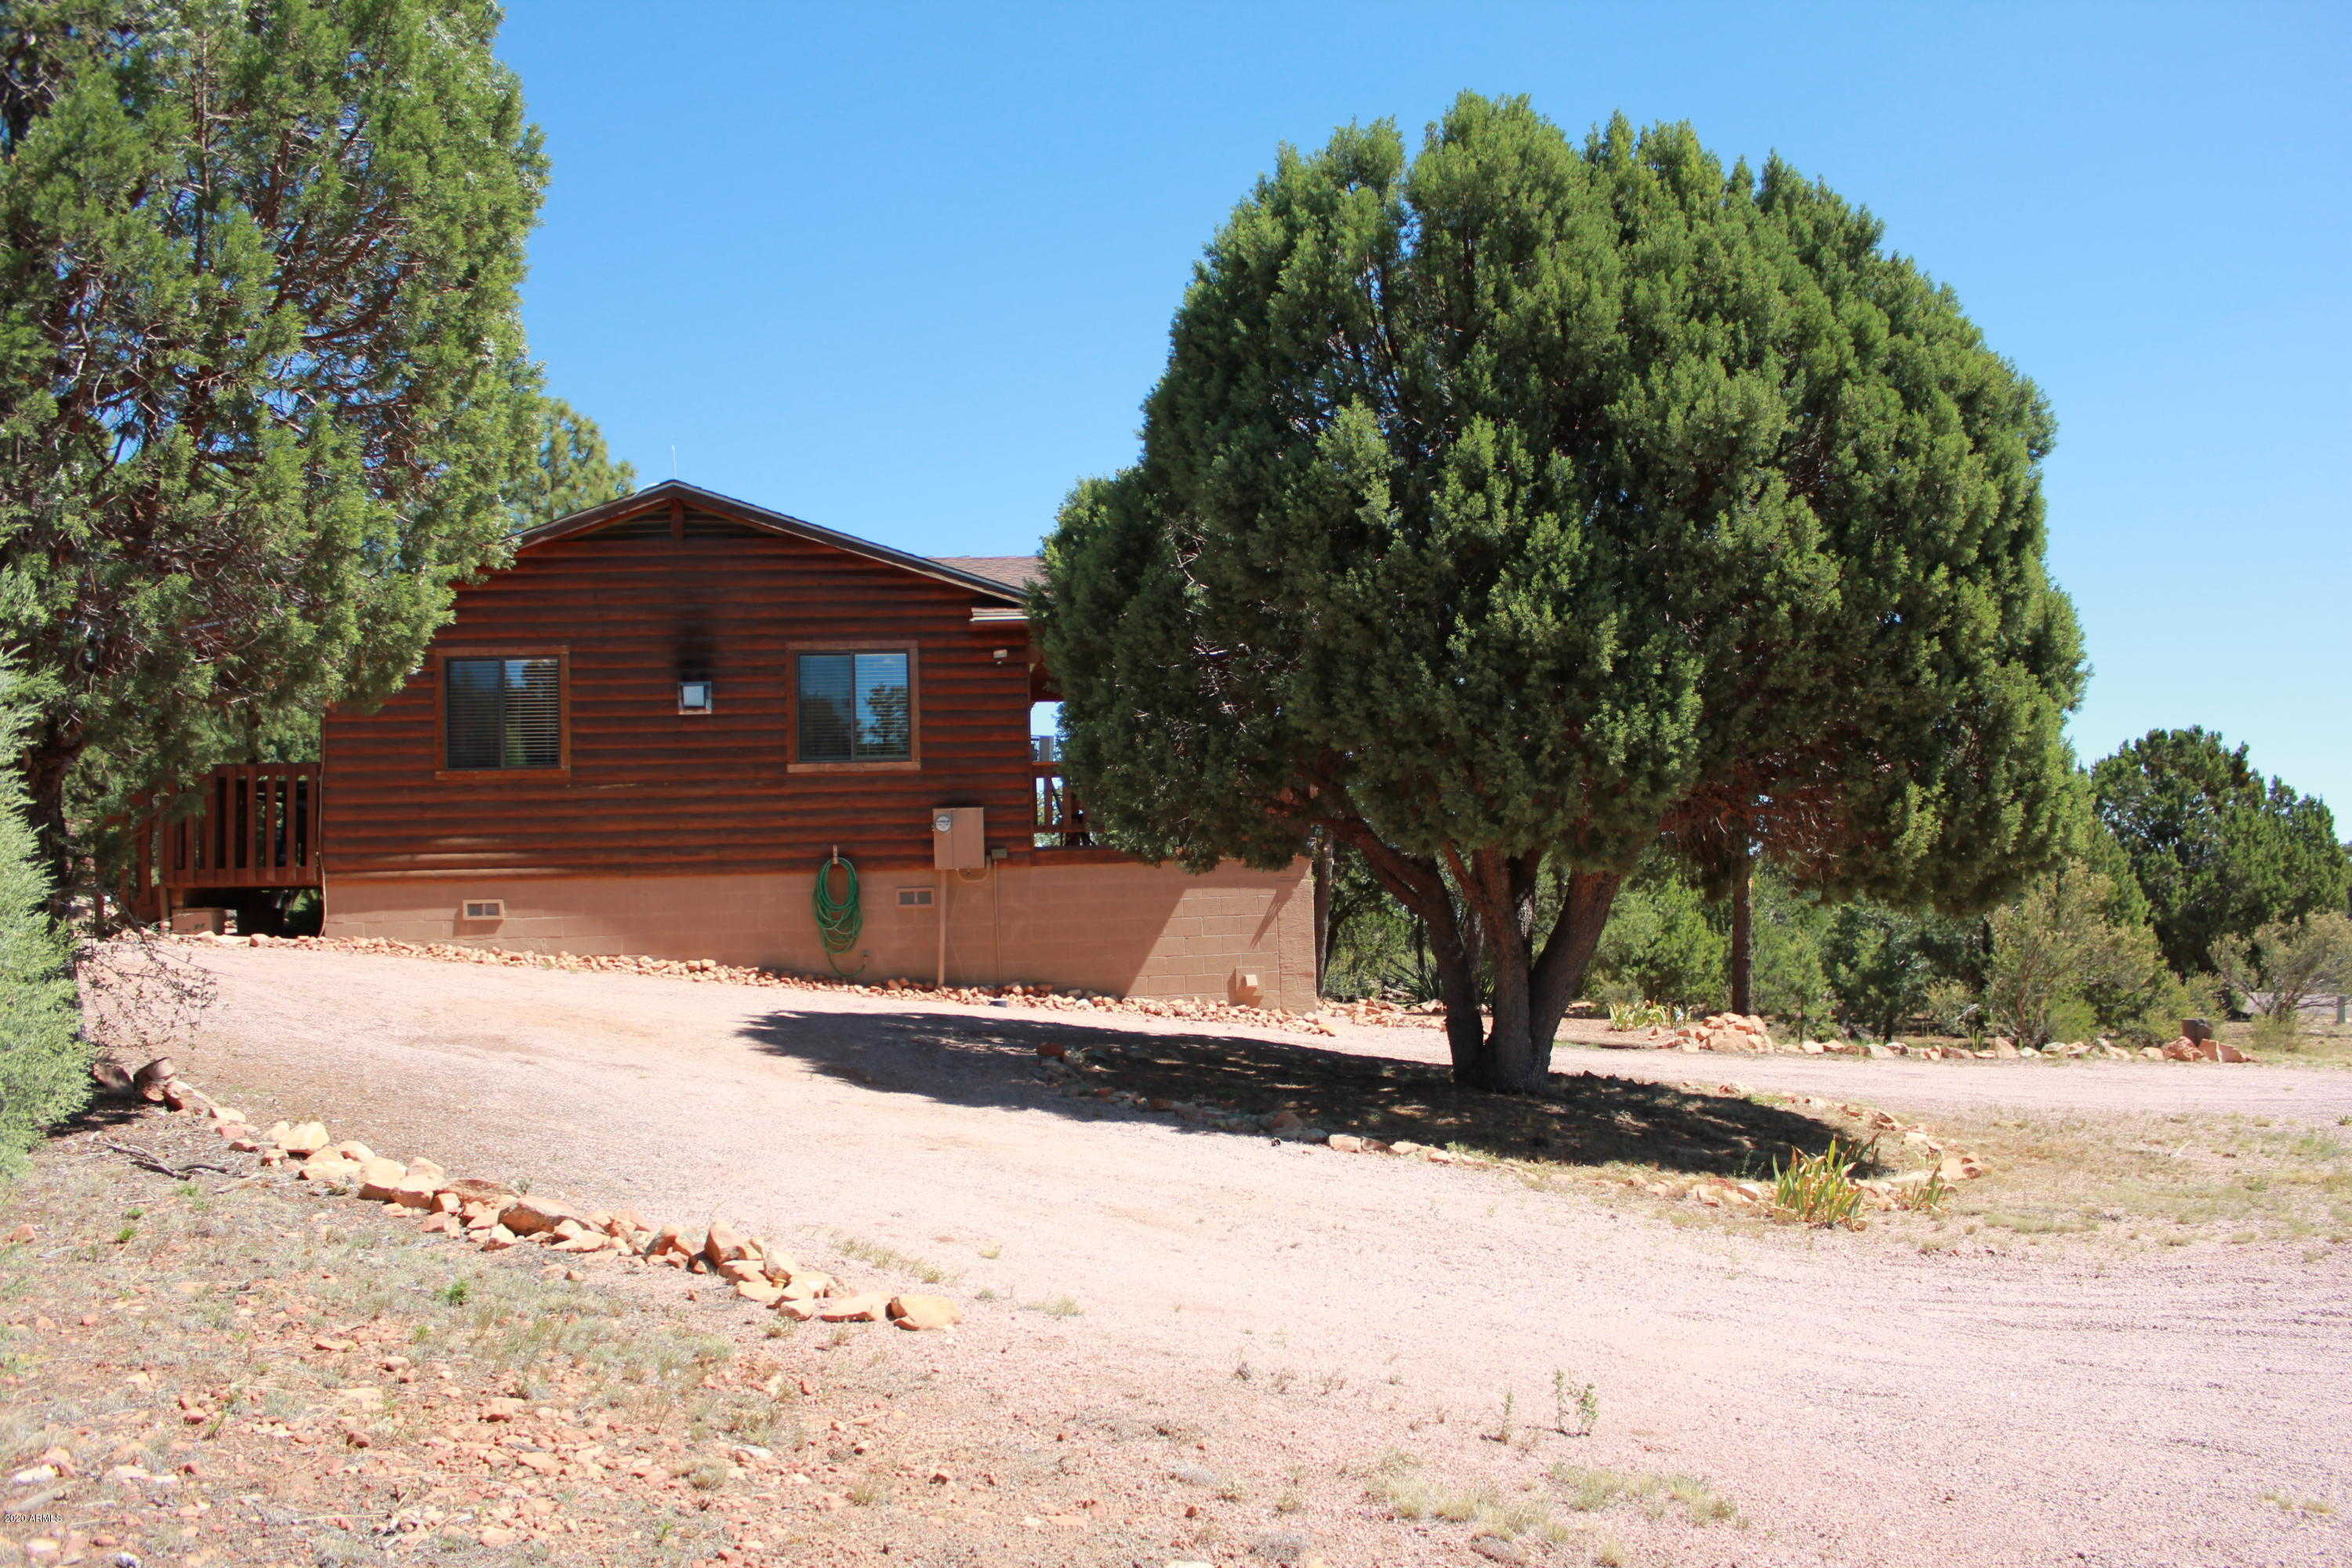 $247,000 - 2Br/1Ba - Home for Sale in High Country Pines, Heber